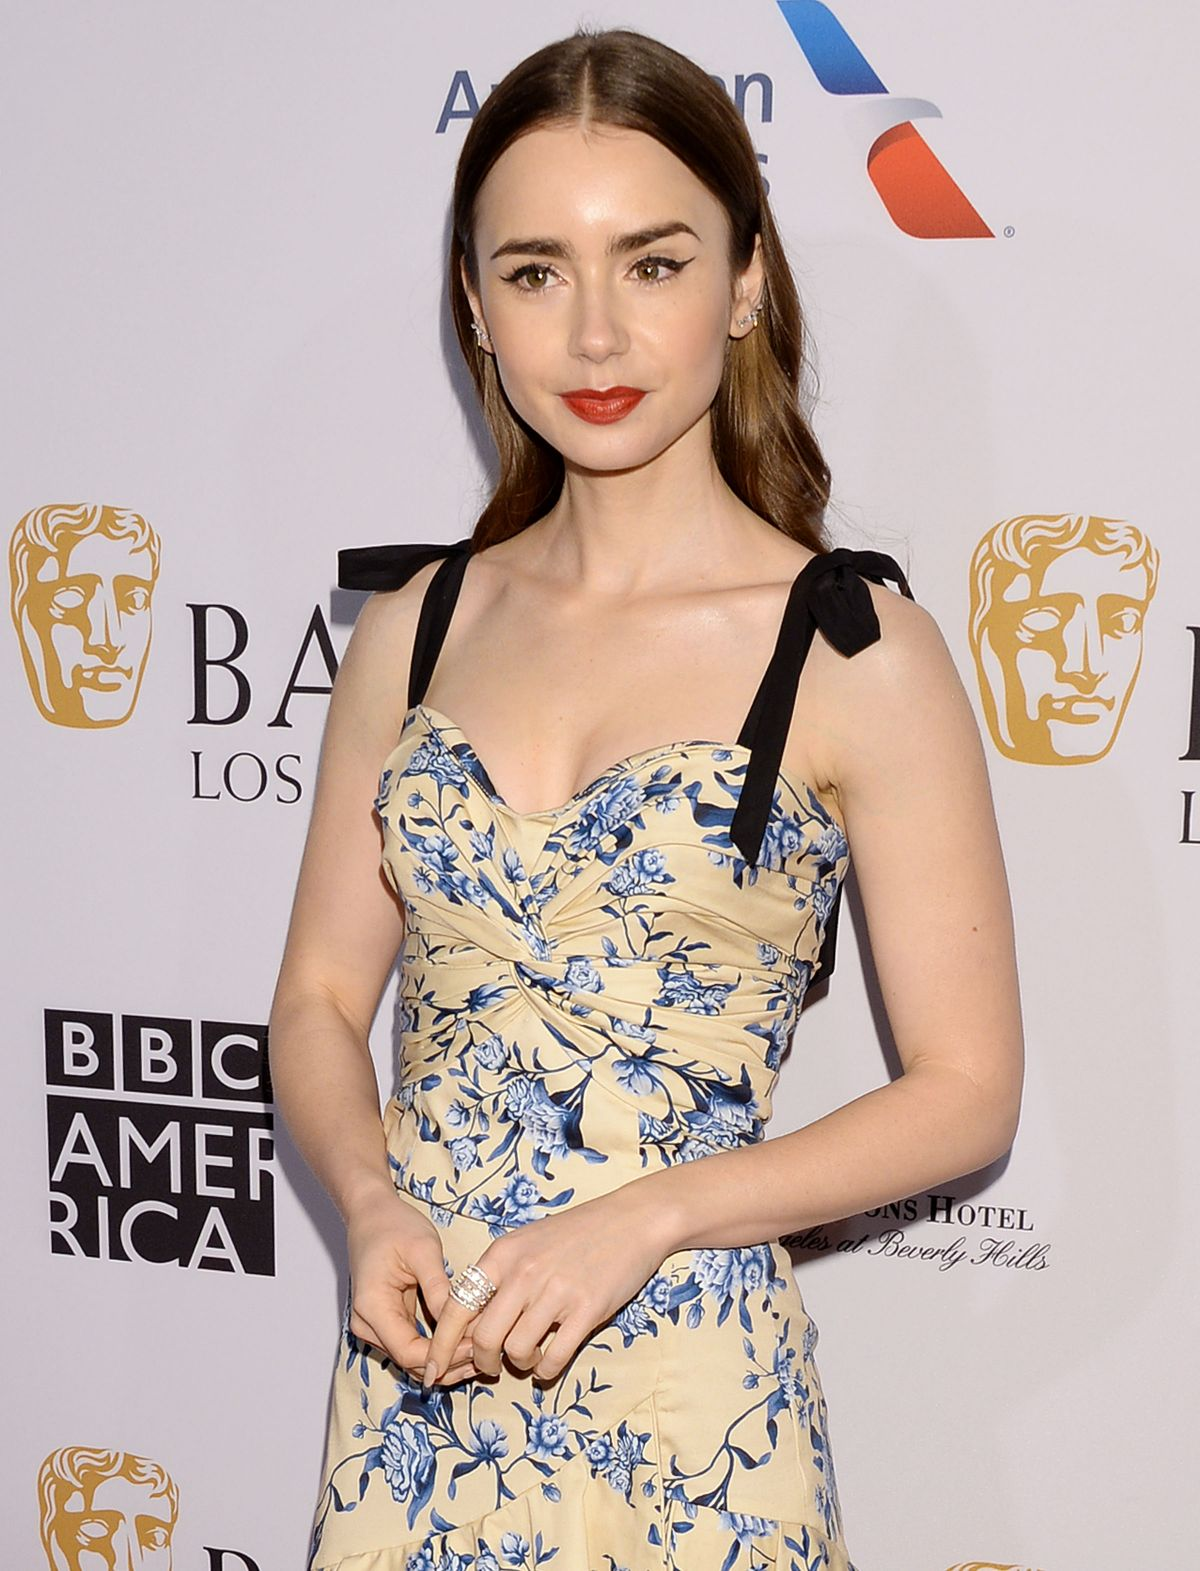 lily-collins-at-bafta-tea-party-in-los-angeles-01-05-2019-5.jpg